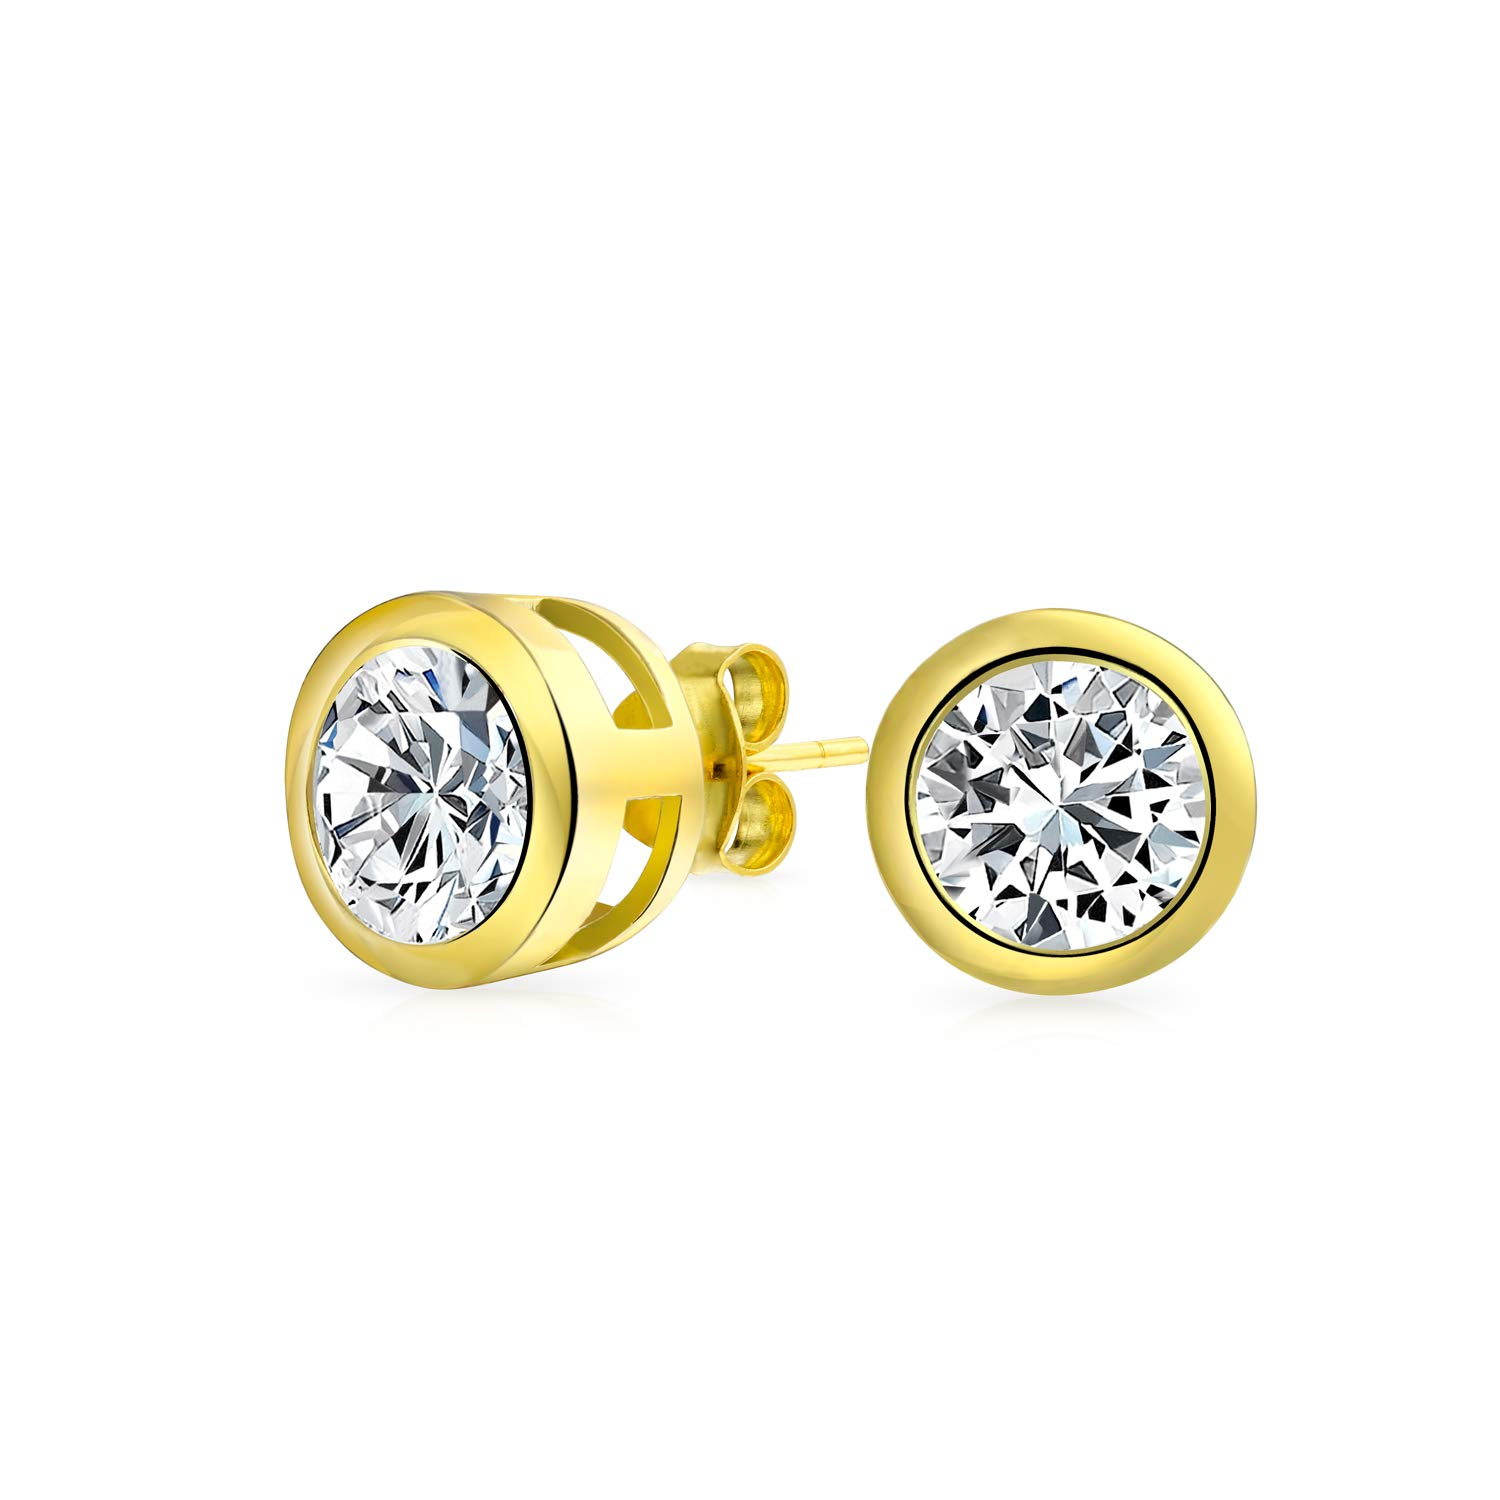 Bling Jewelry Gold Plated Bezel Round CZ Men Stud Earrings 925 Silver 7mm DT-LE-0026-G-7mm